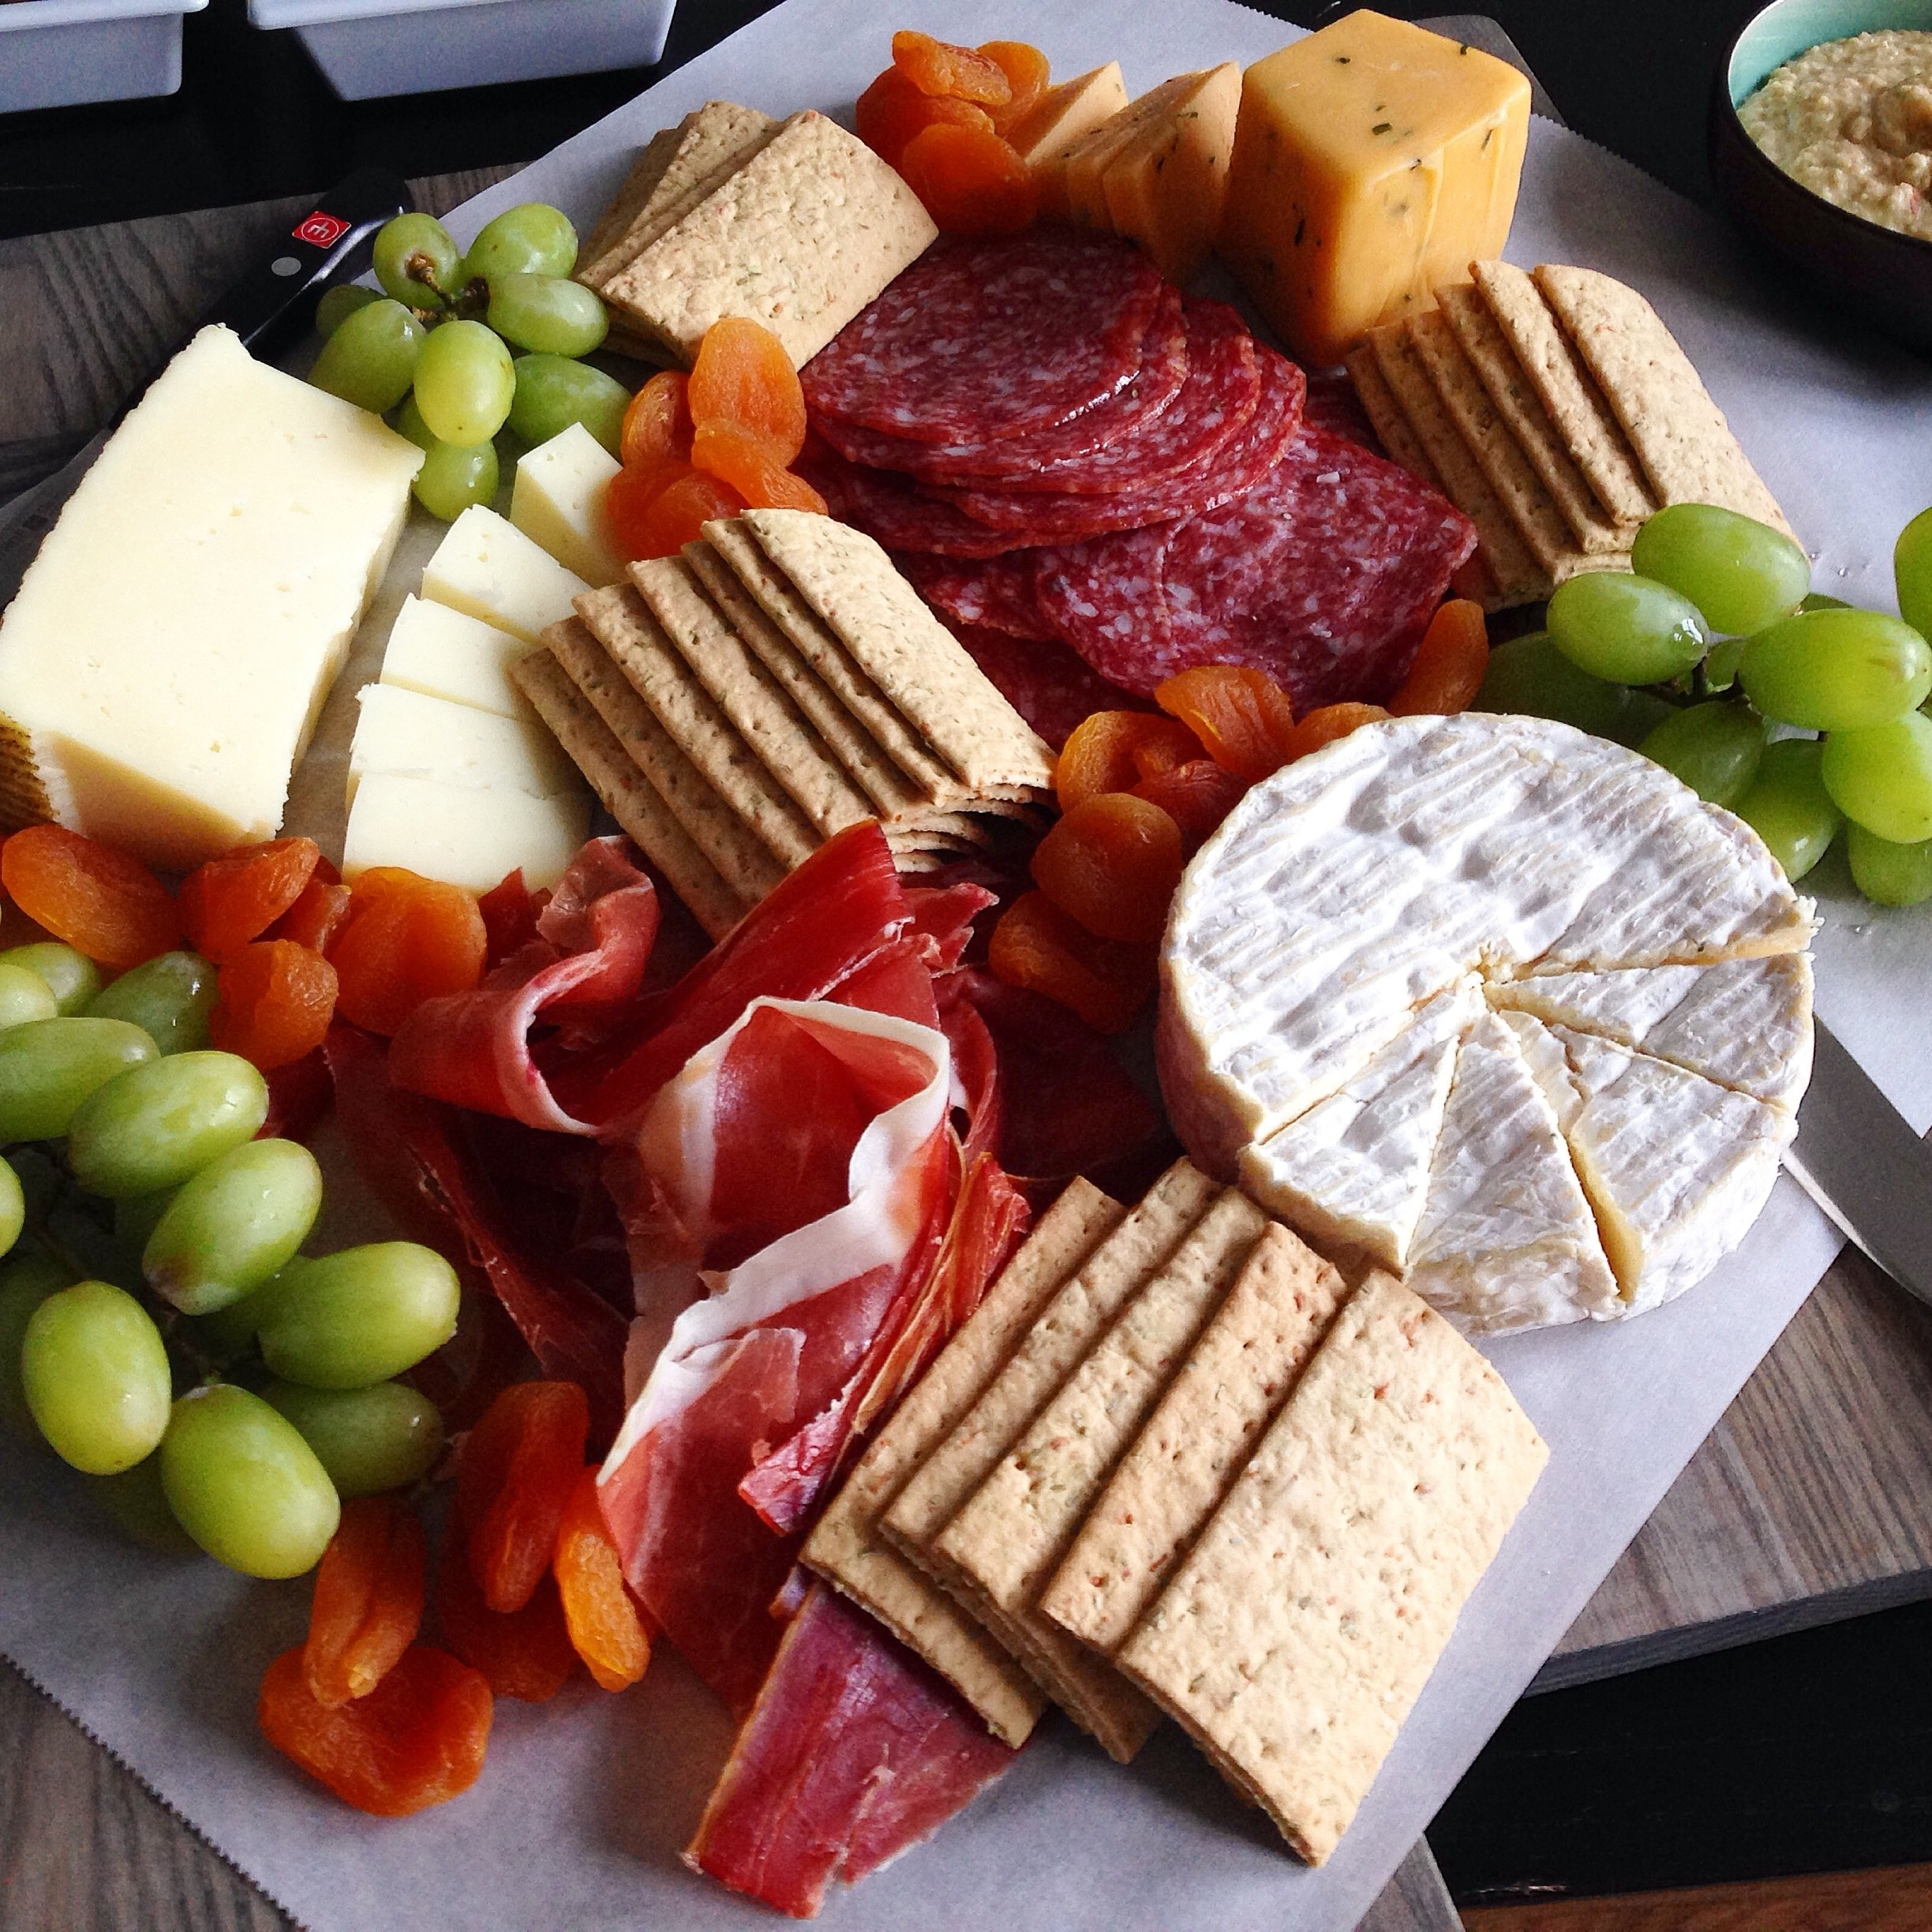 10 Gorgeous Cheese And Meat Platter Ideas easy entertaining charcuterie and cheese board ahu eats 2 2020